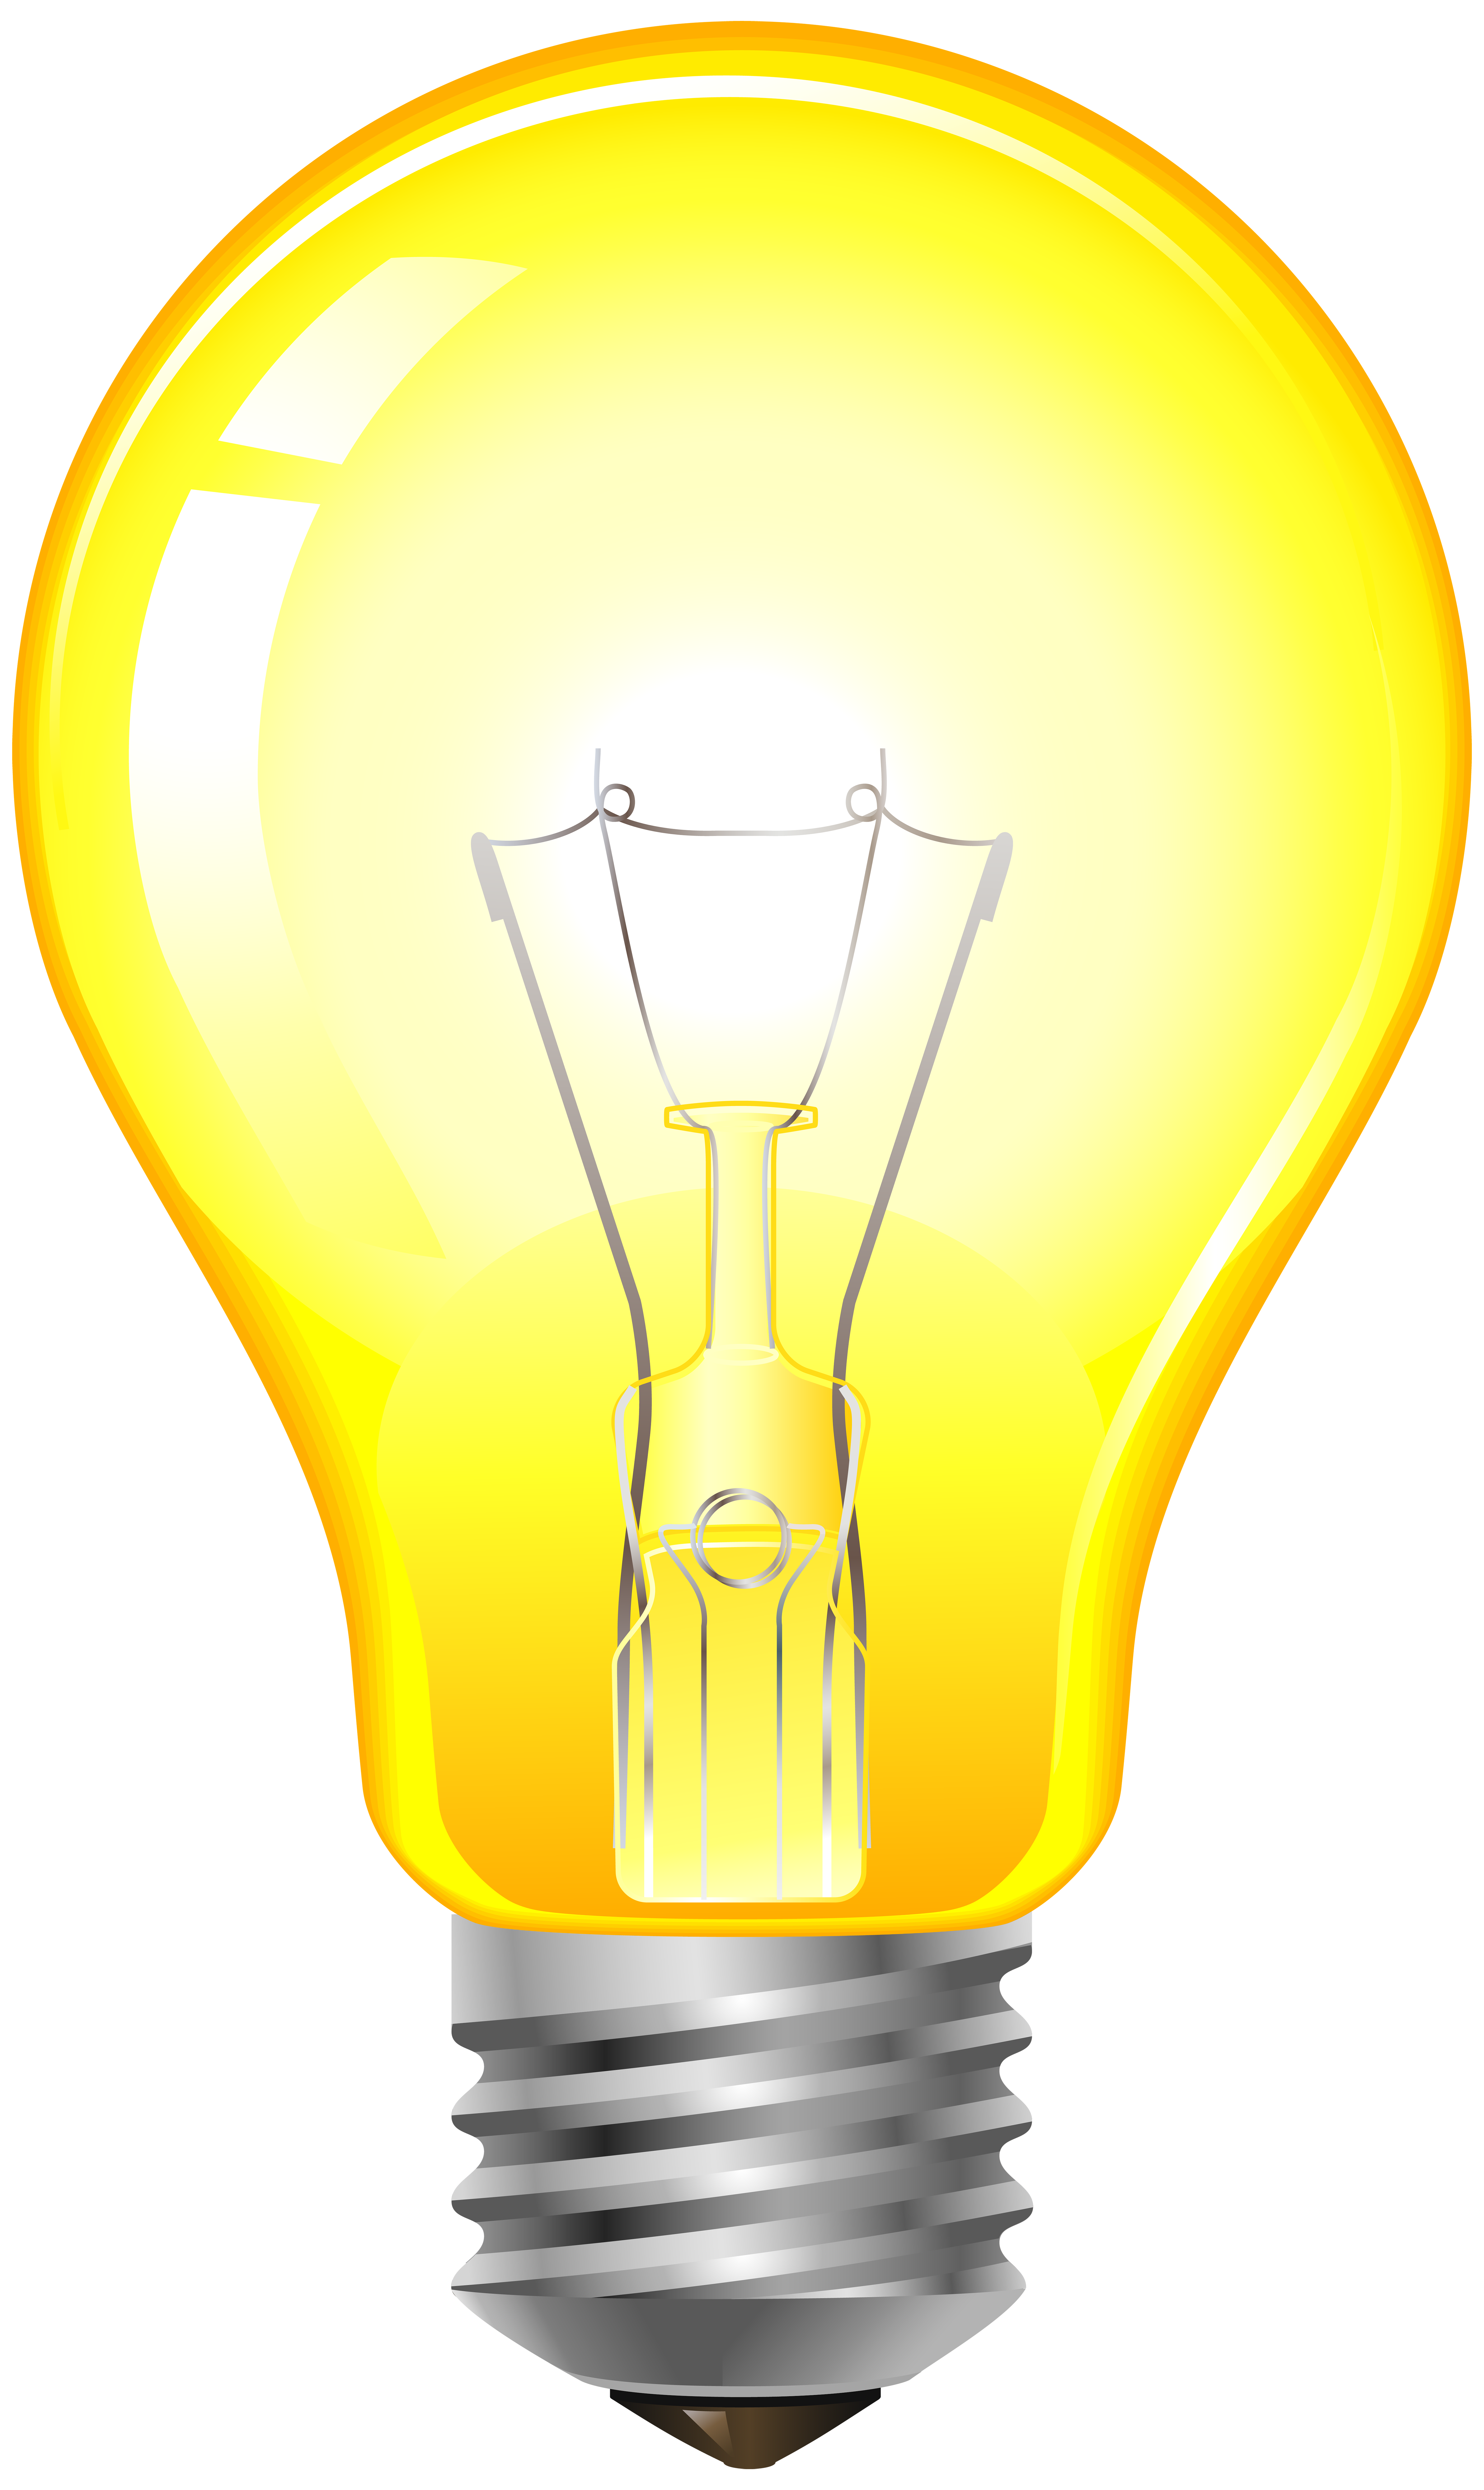 Bulb netherlands clipart 20 free Cliparts | Download ...